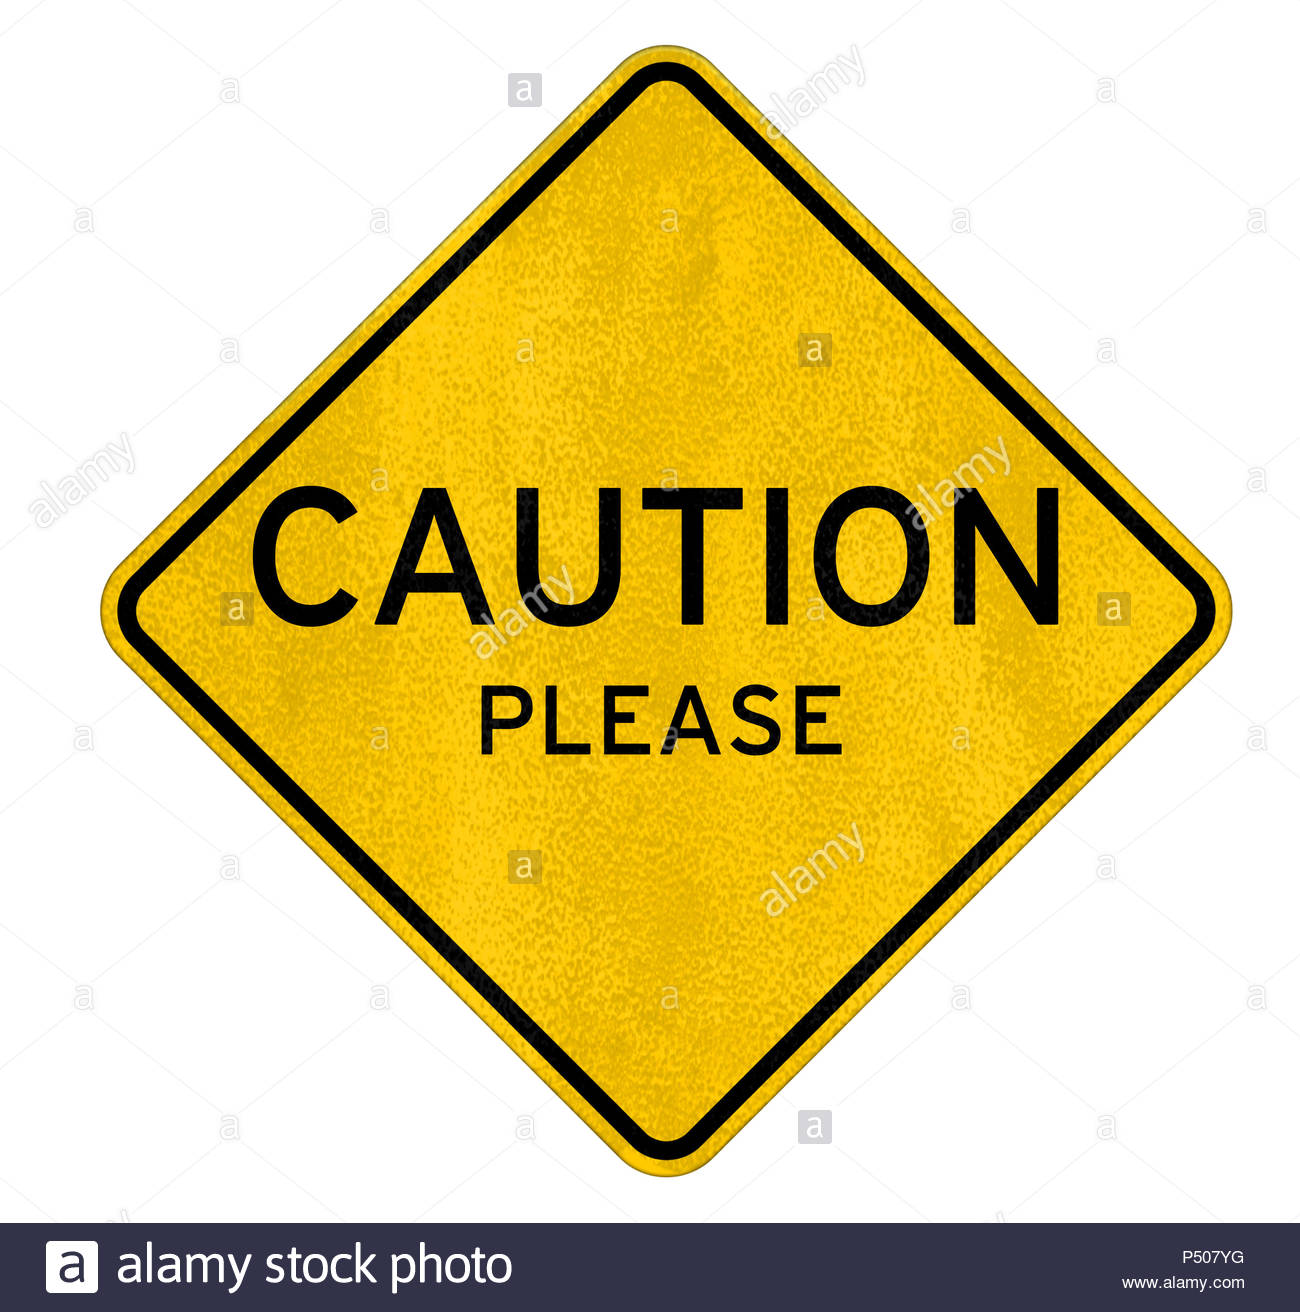 Caution please - road sign warning - Stock Image